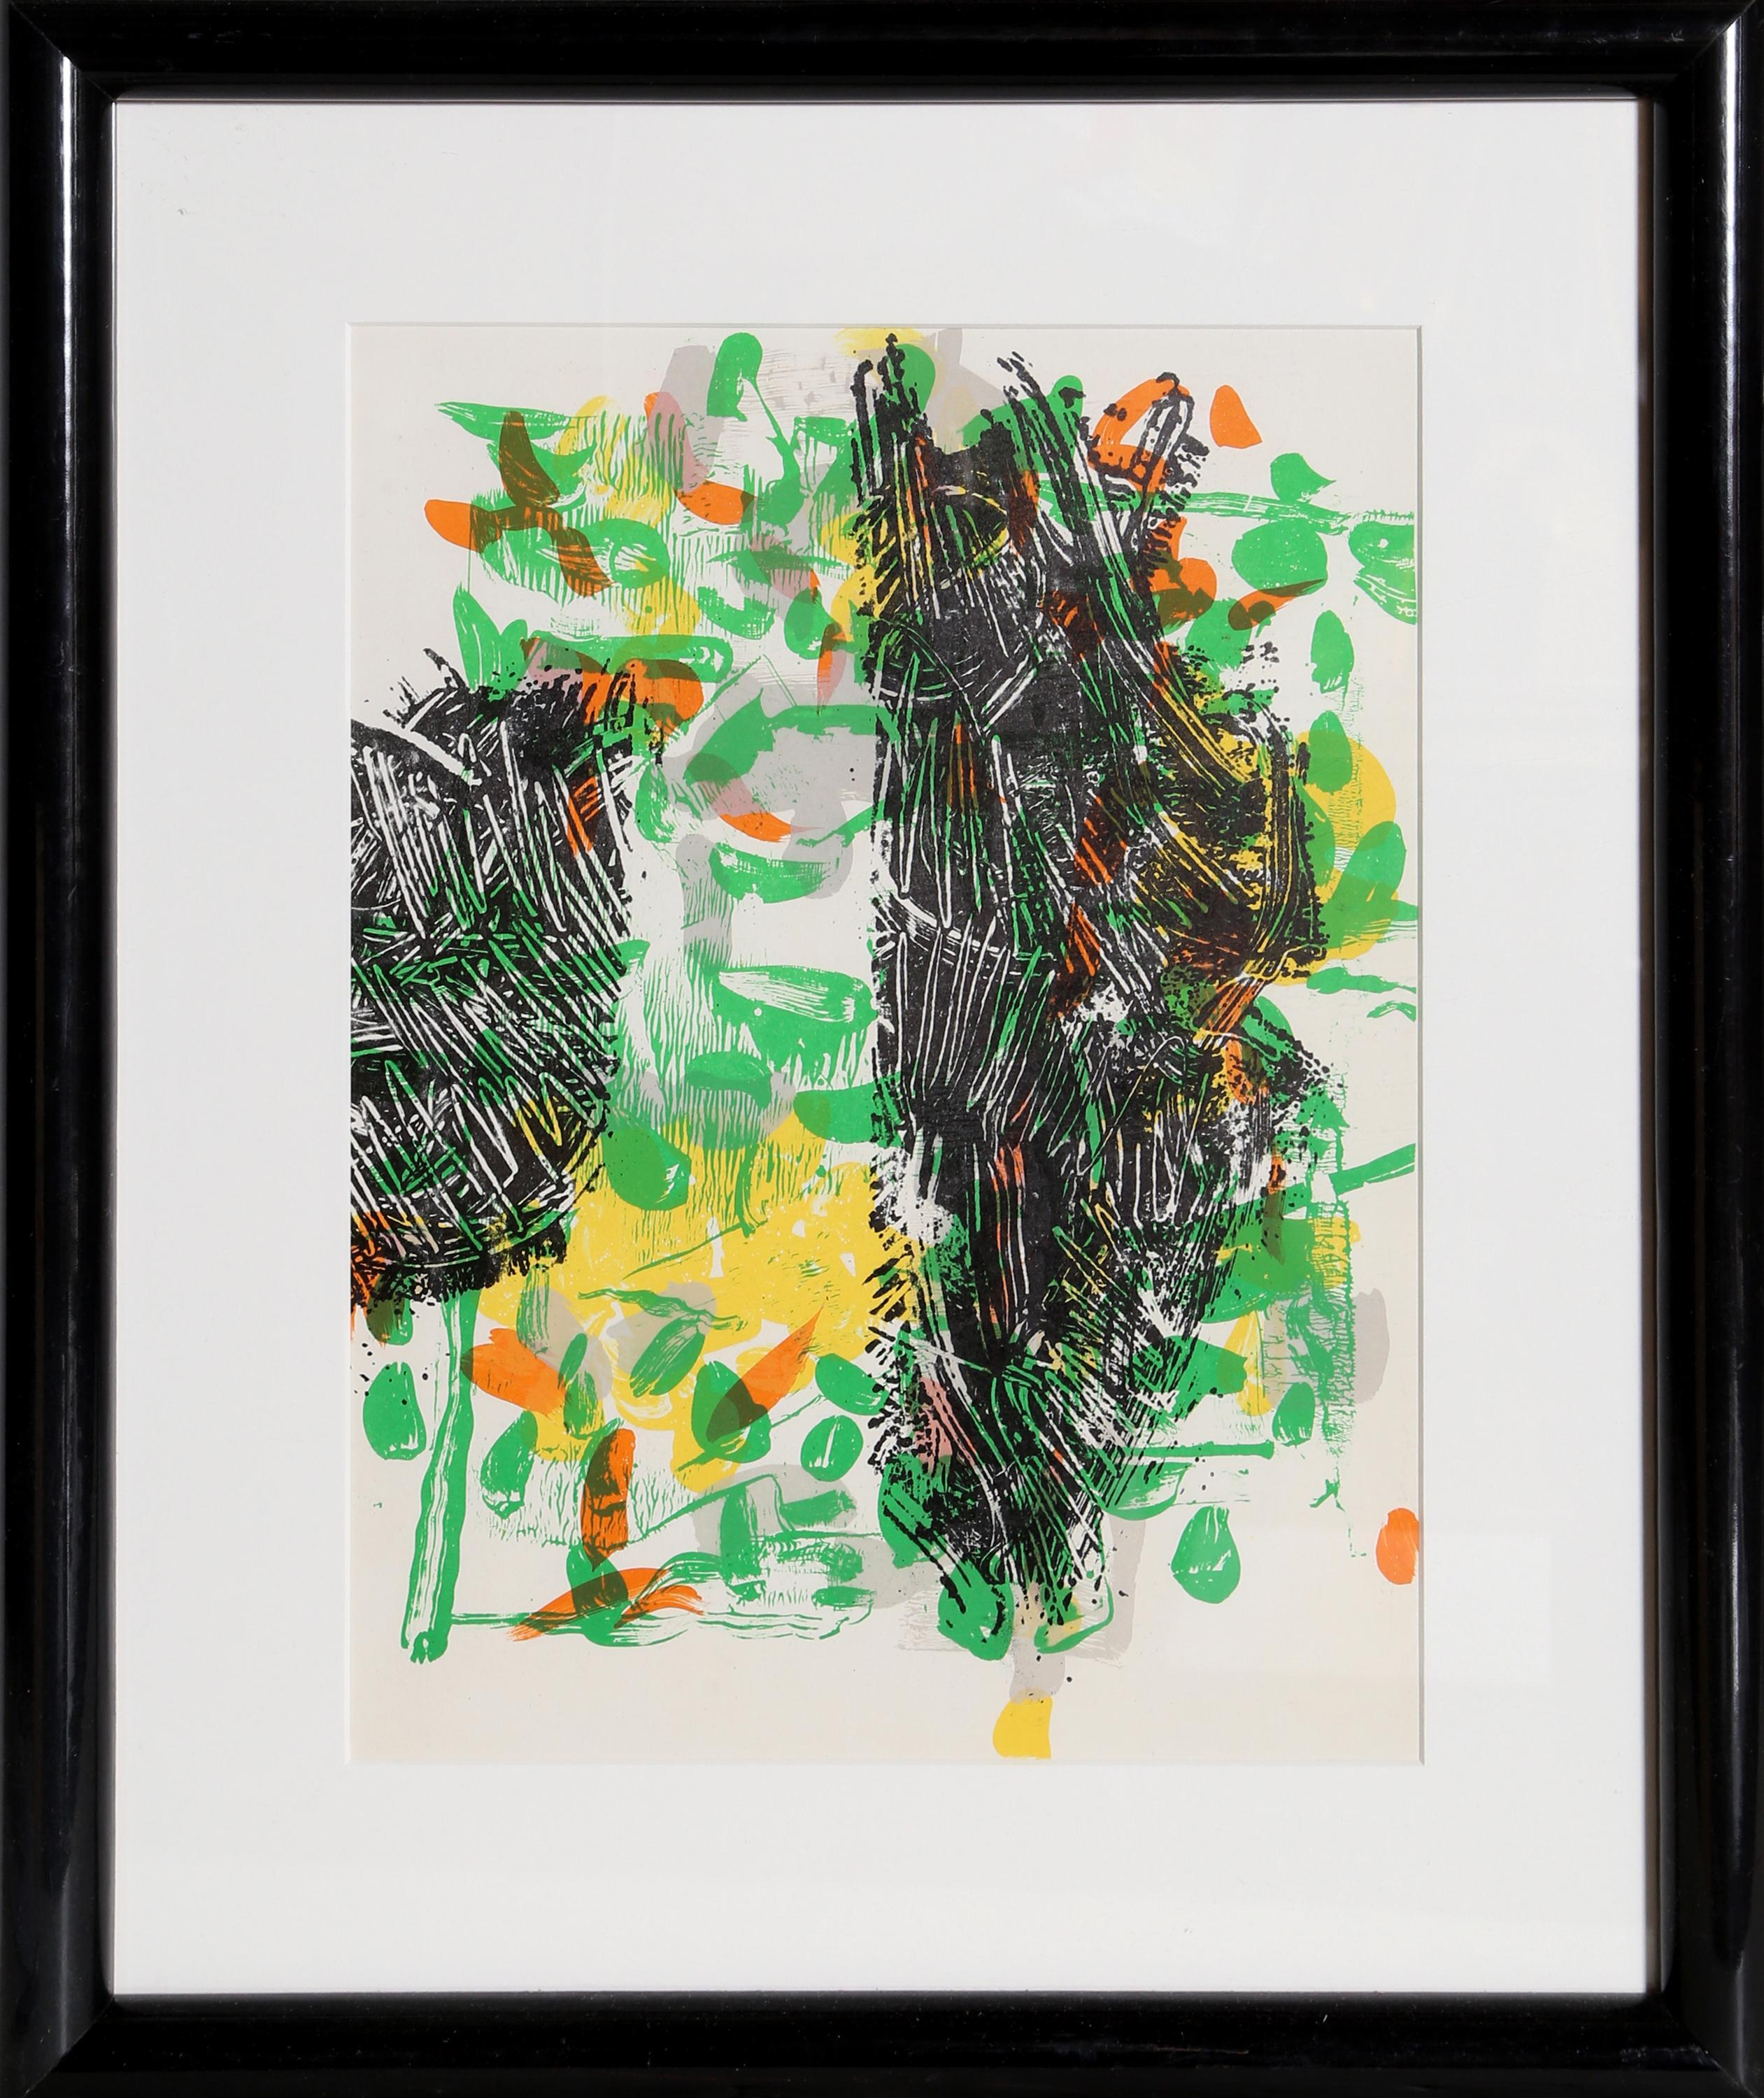 Jean-Paul Riopelle, Green Abstract from Derriere le Miroir, Lithograph